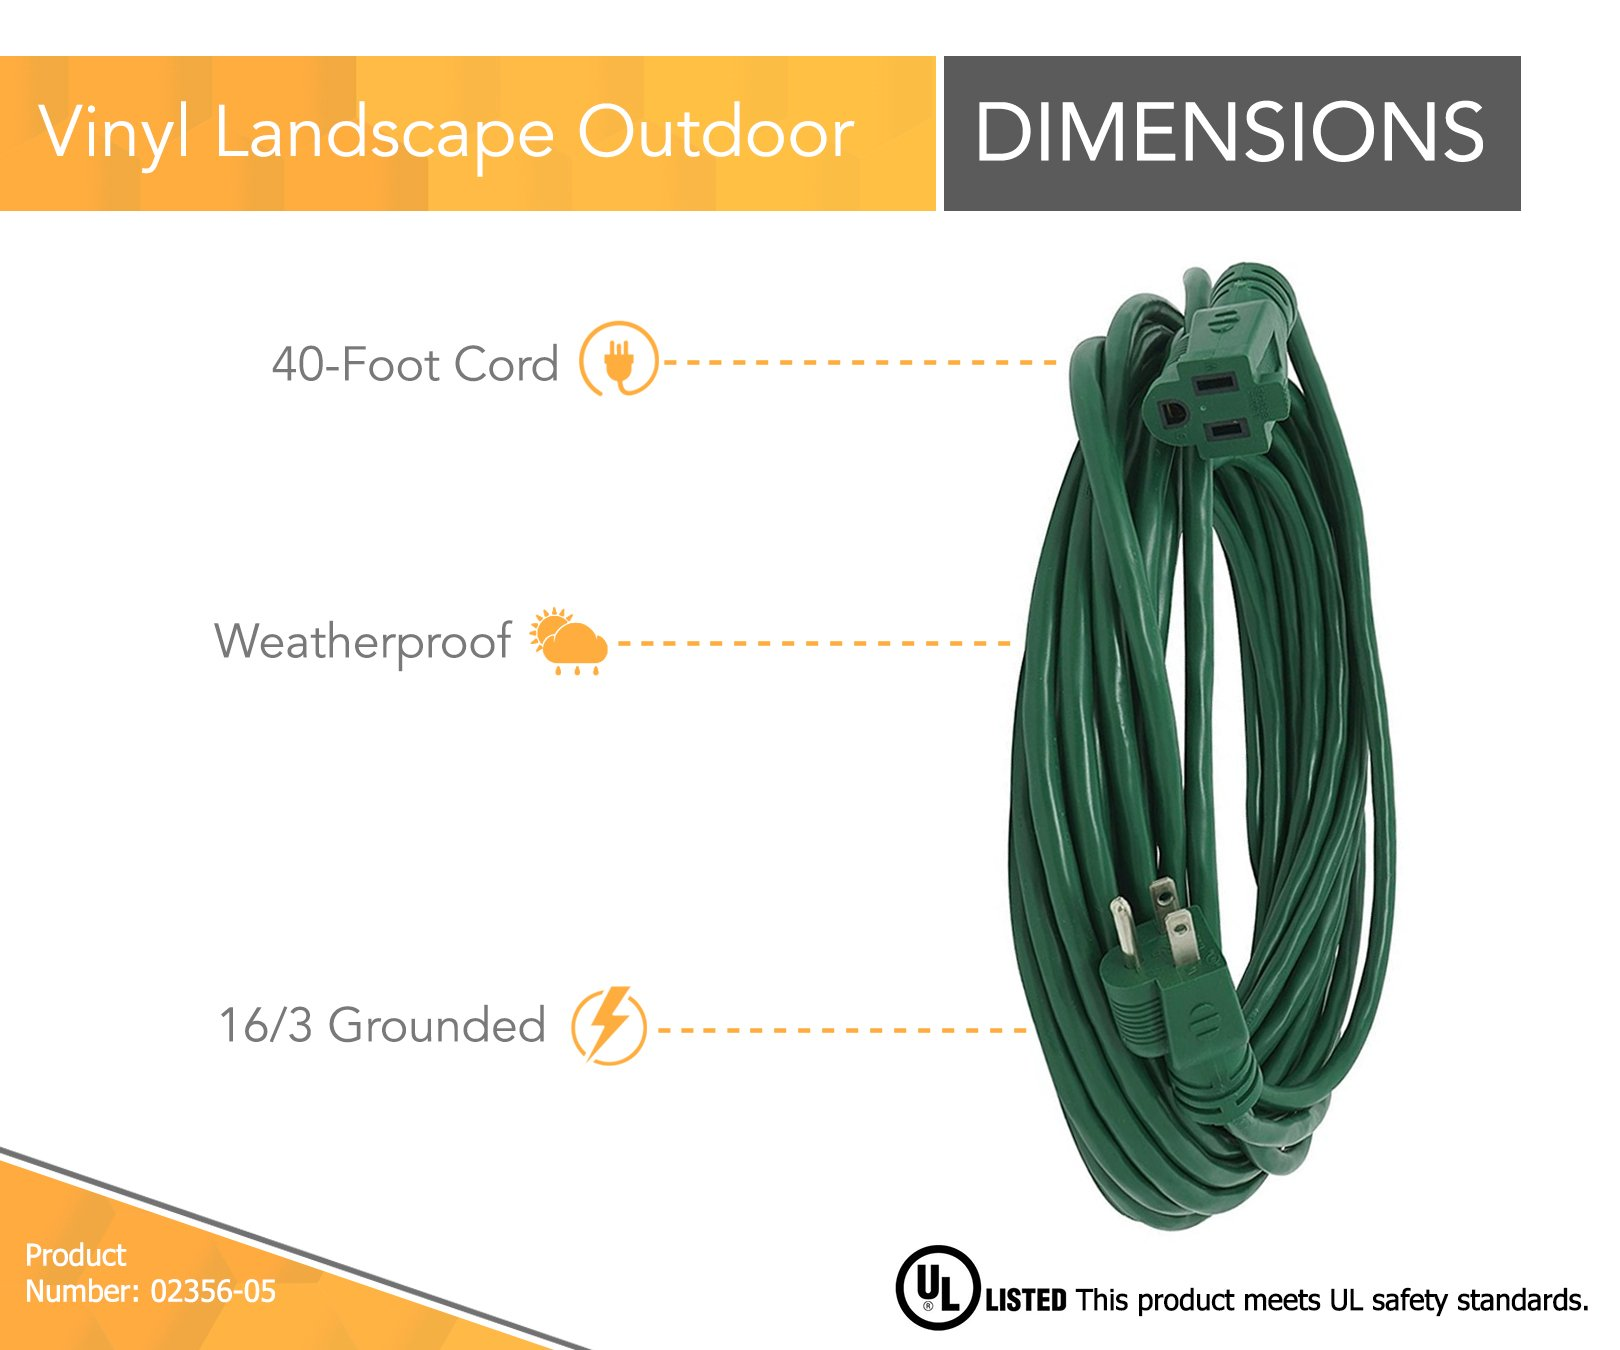 Coleman Cable 2356 16/3 Vinyl Landscape Outdoor Extension Cord, Green, 40 Foot by Coleman Cable (Image #2)